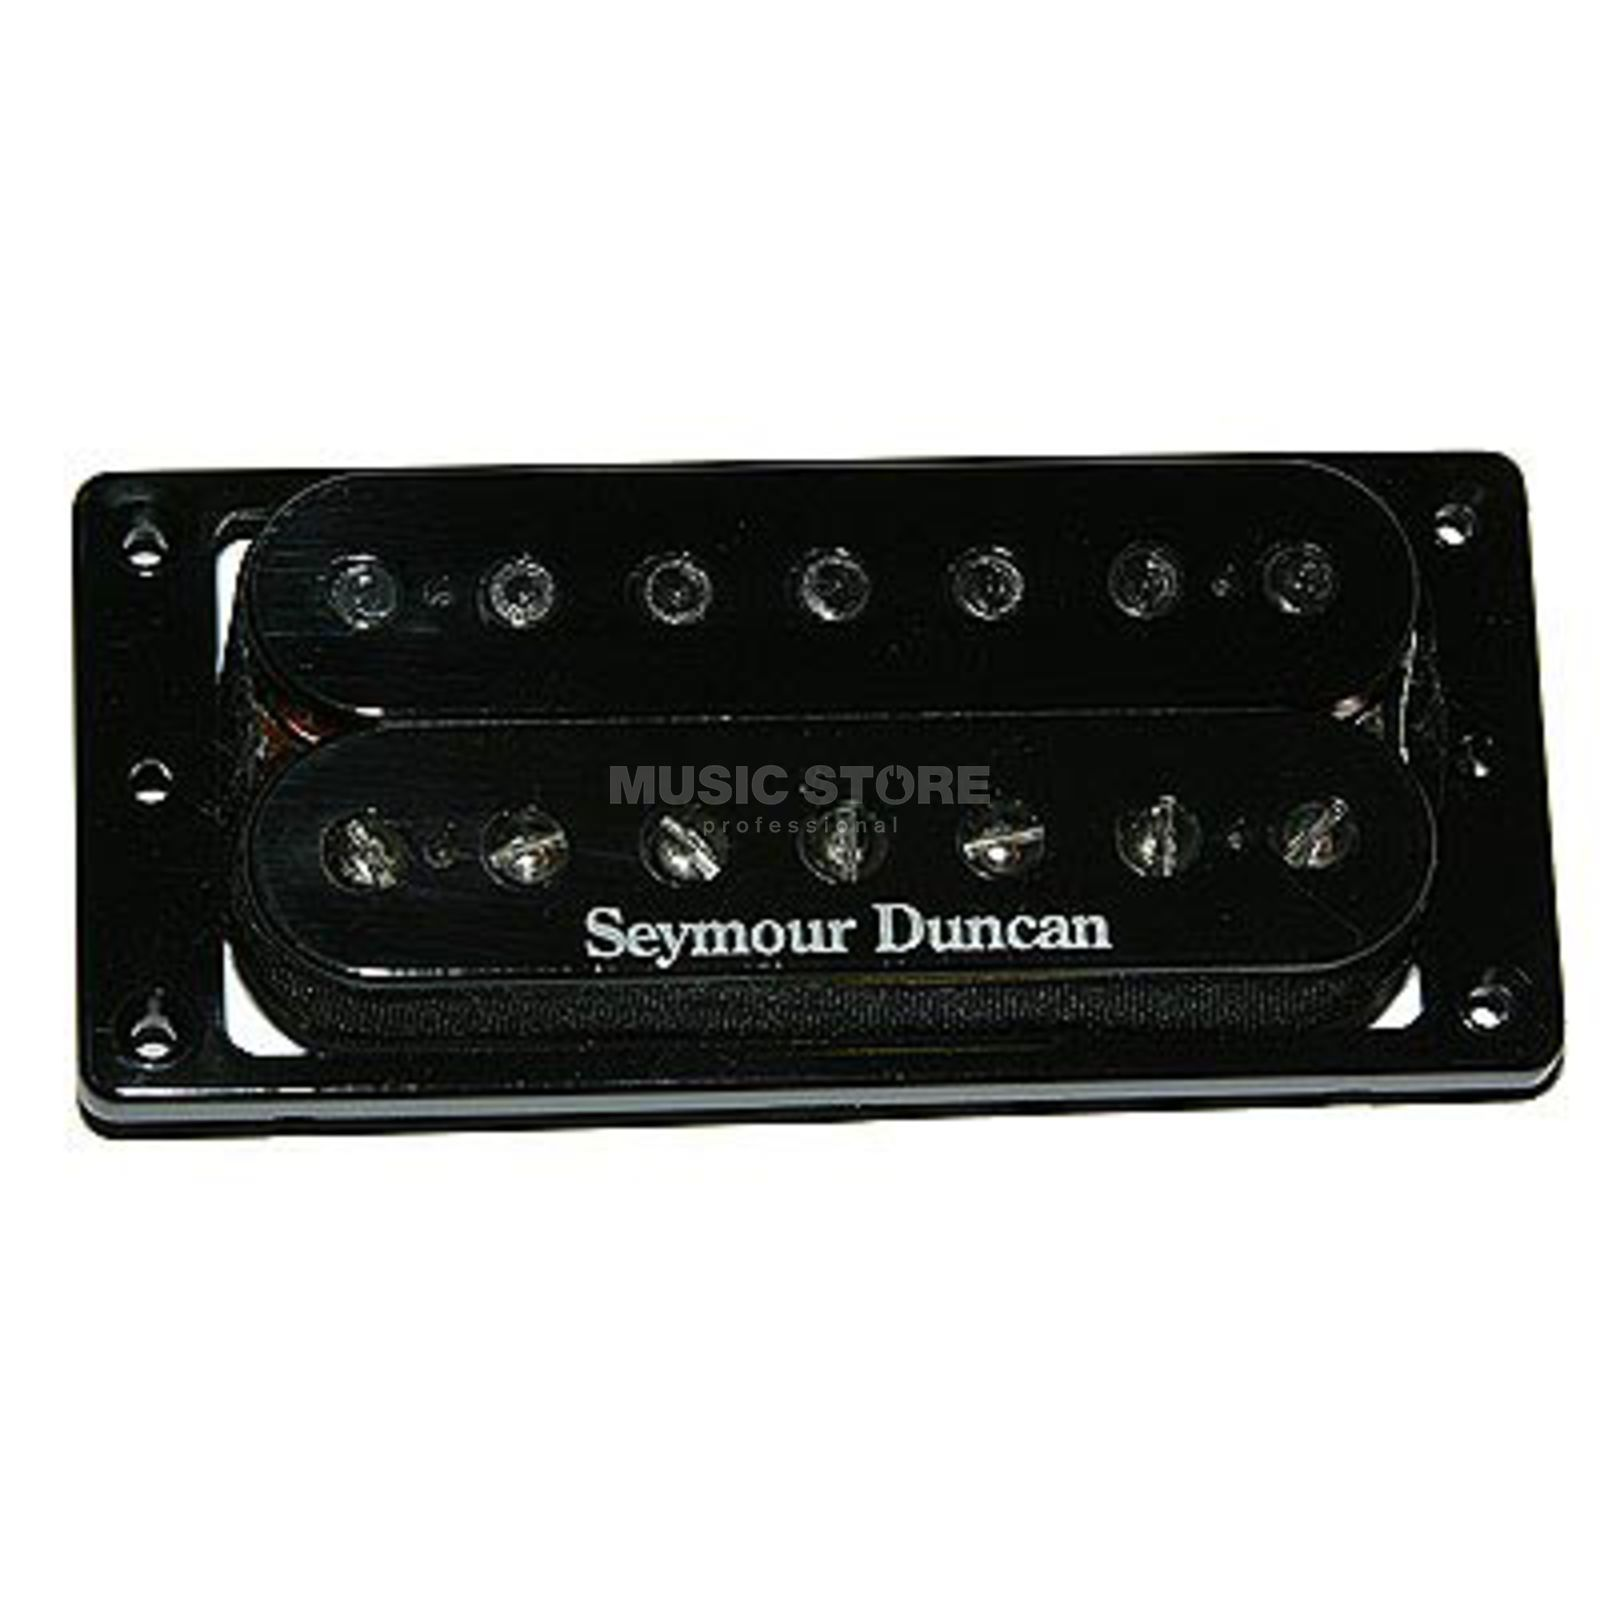 Seymour Duncan 59 Modell 7 Bridge black 4-phase, 7-string Produktbillede